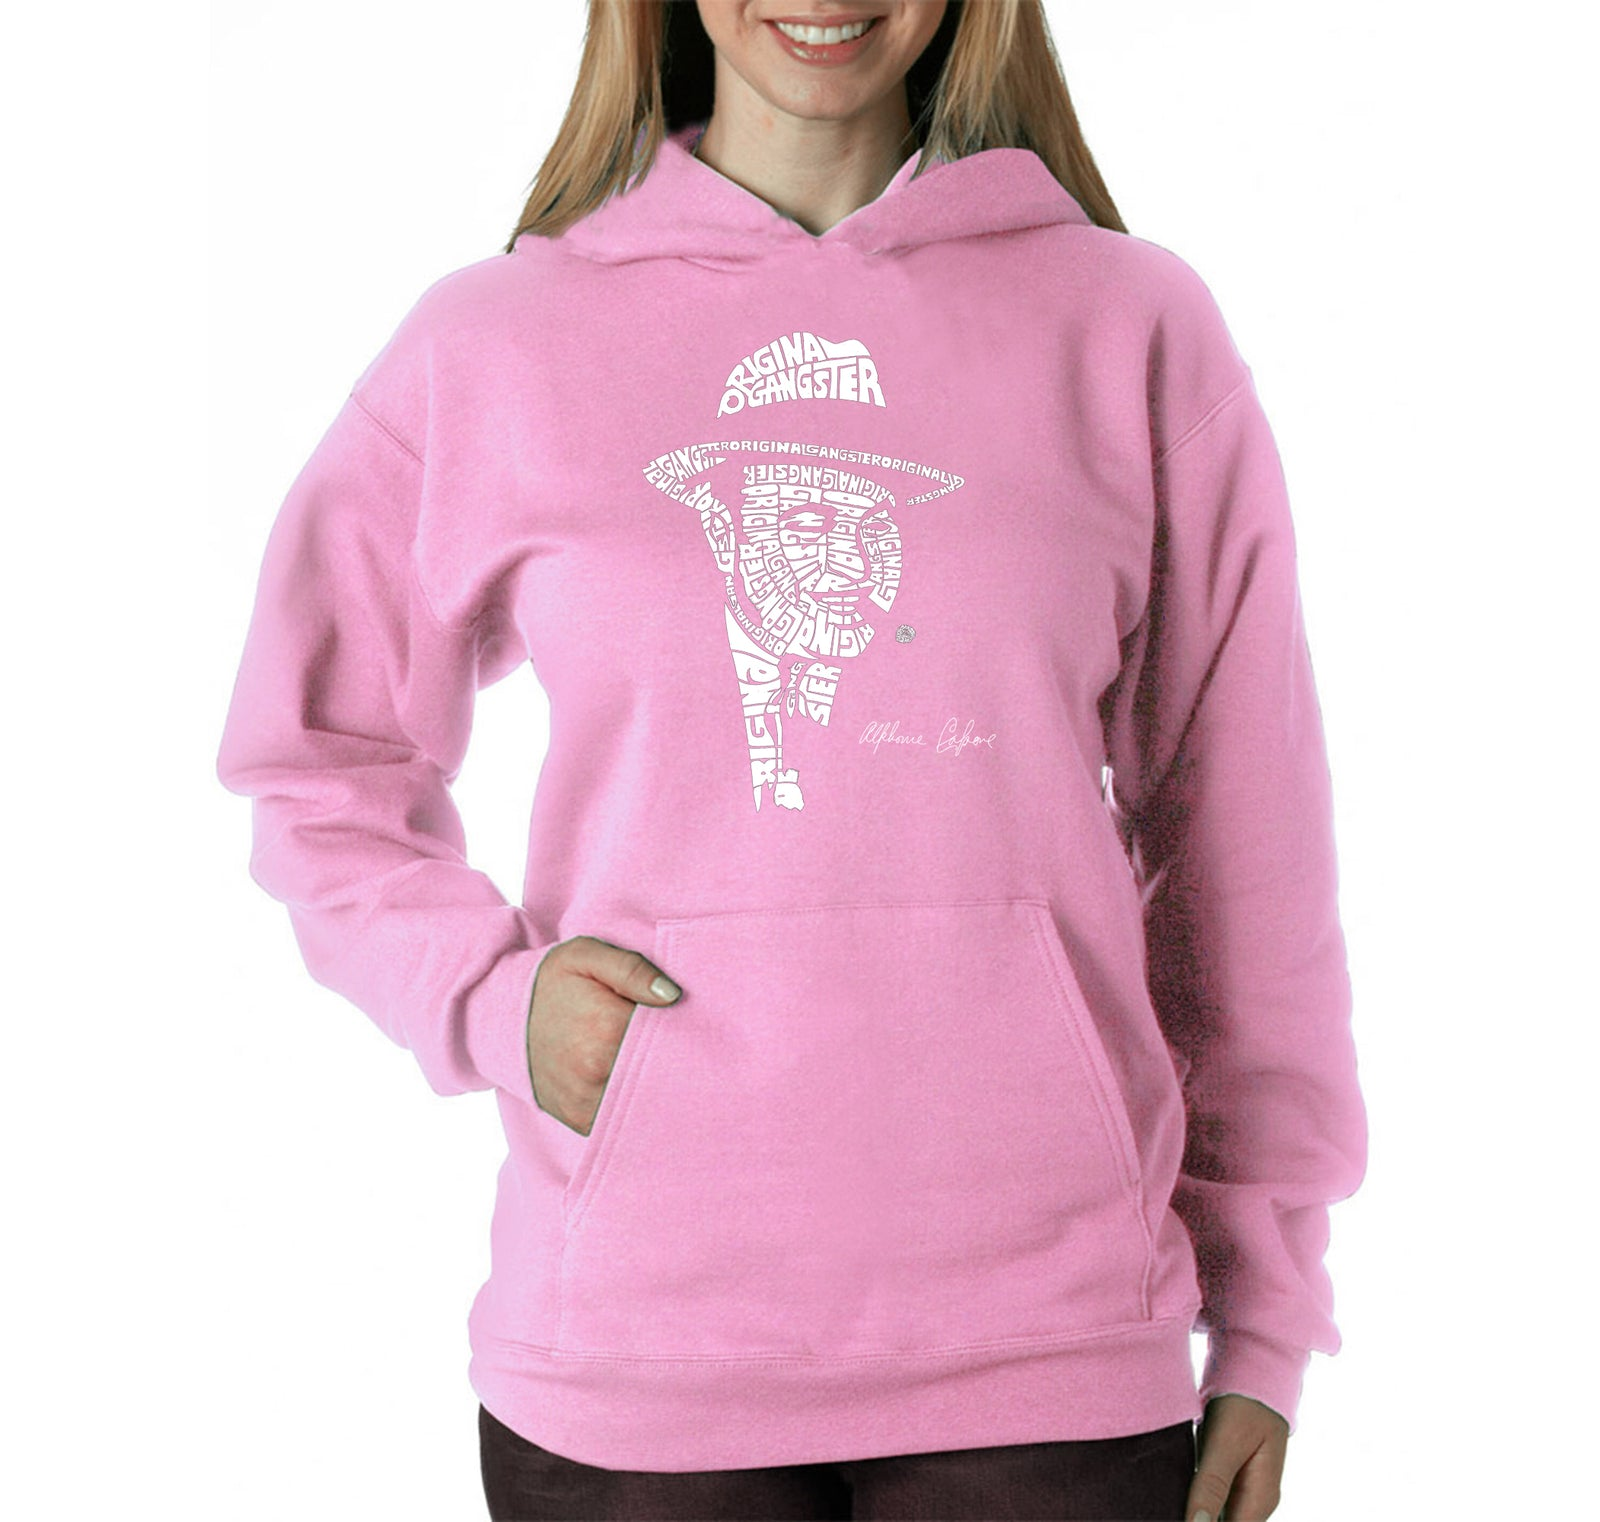 Women's Hooded Sweatshirt -AL CAPONE-ORIGINAL GANGSTER